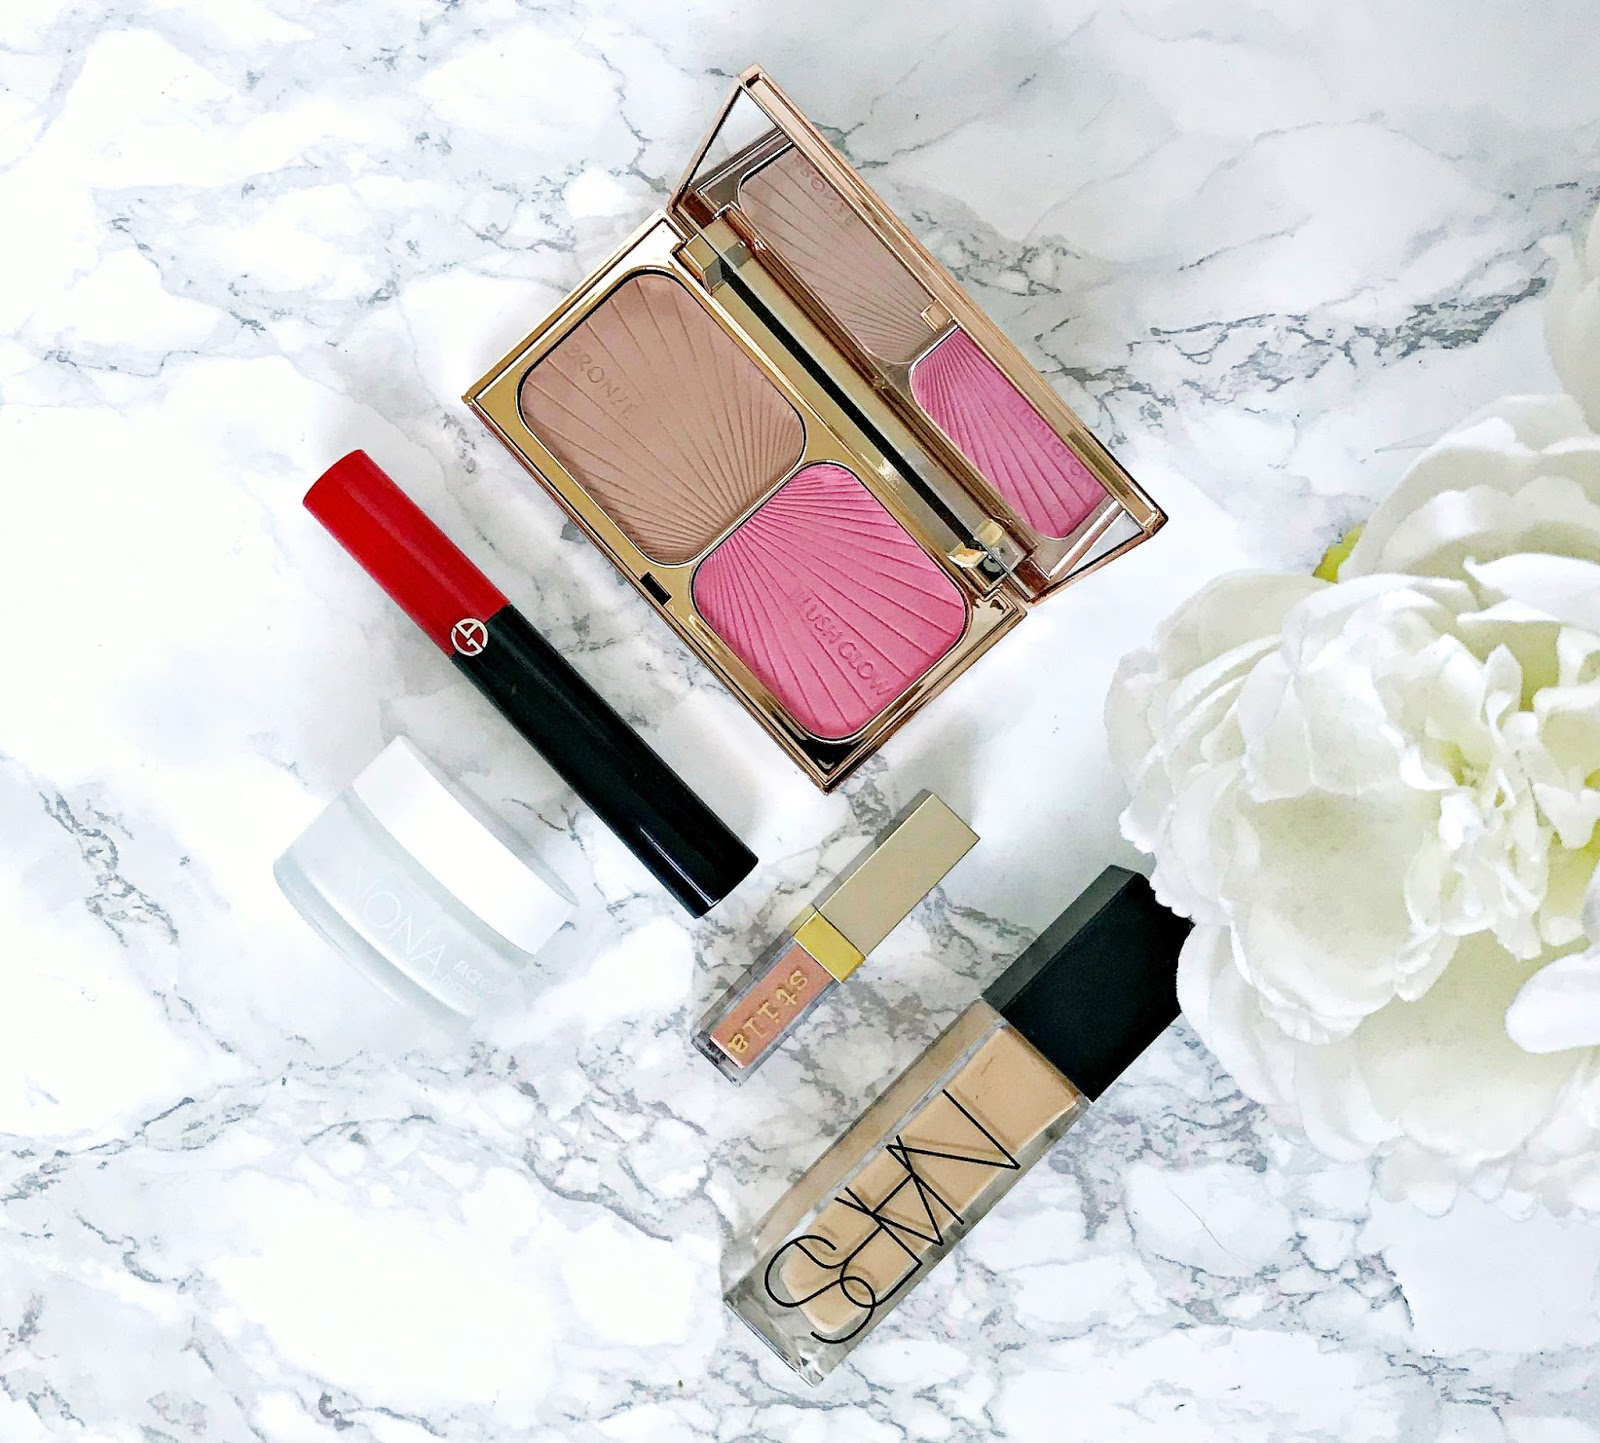 Nars Radiant Longwear Foundation review, Charlotte Tilbury Blush & Bronze Review and giveaway, Armani Eccentrico Mascara Review, Stila Glitter & Glow Liquid Eyeshadow Rose Gold Retro Review